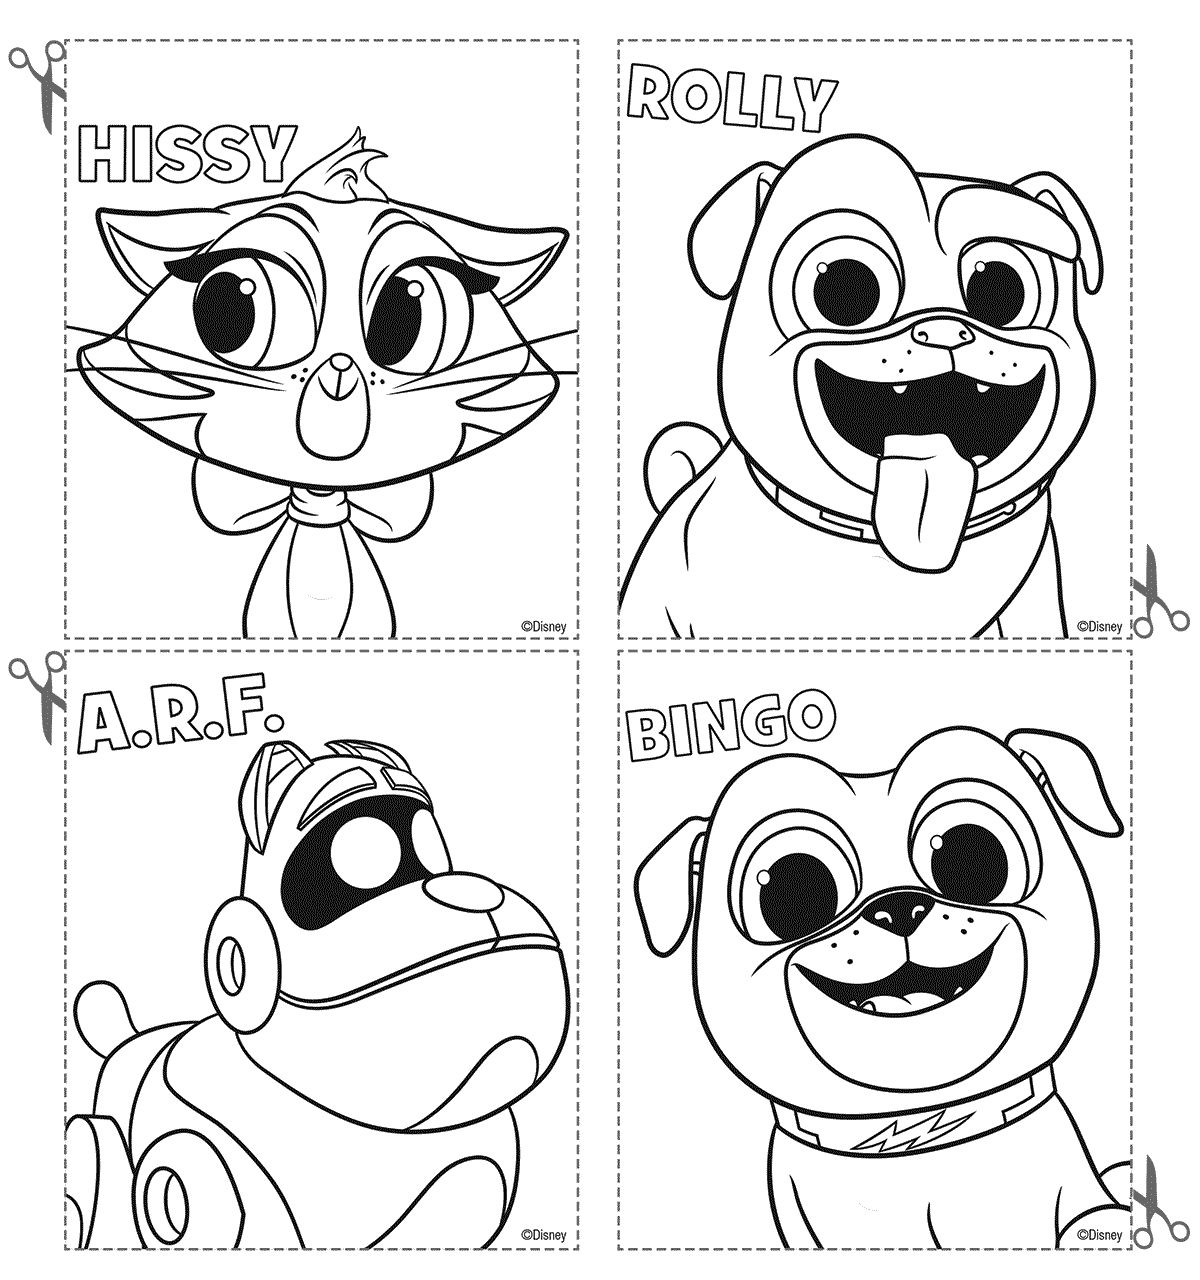 Disney Puppy Dog Pals Coloring Pages Cards